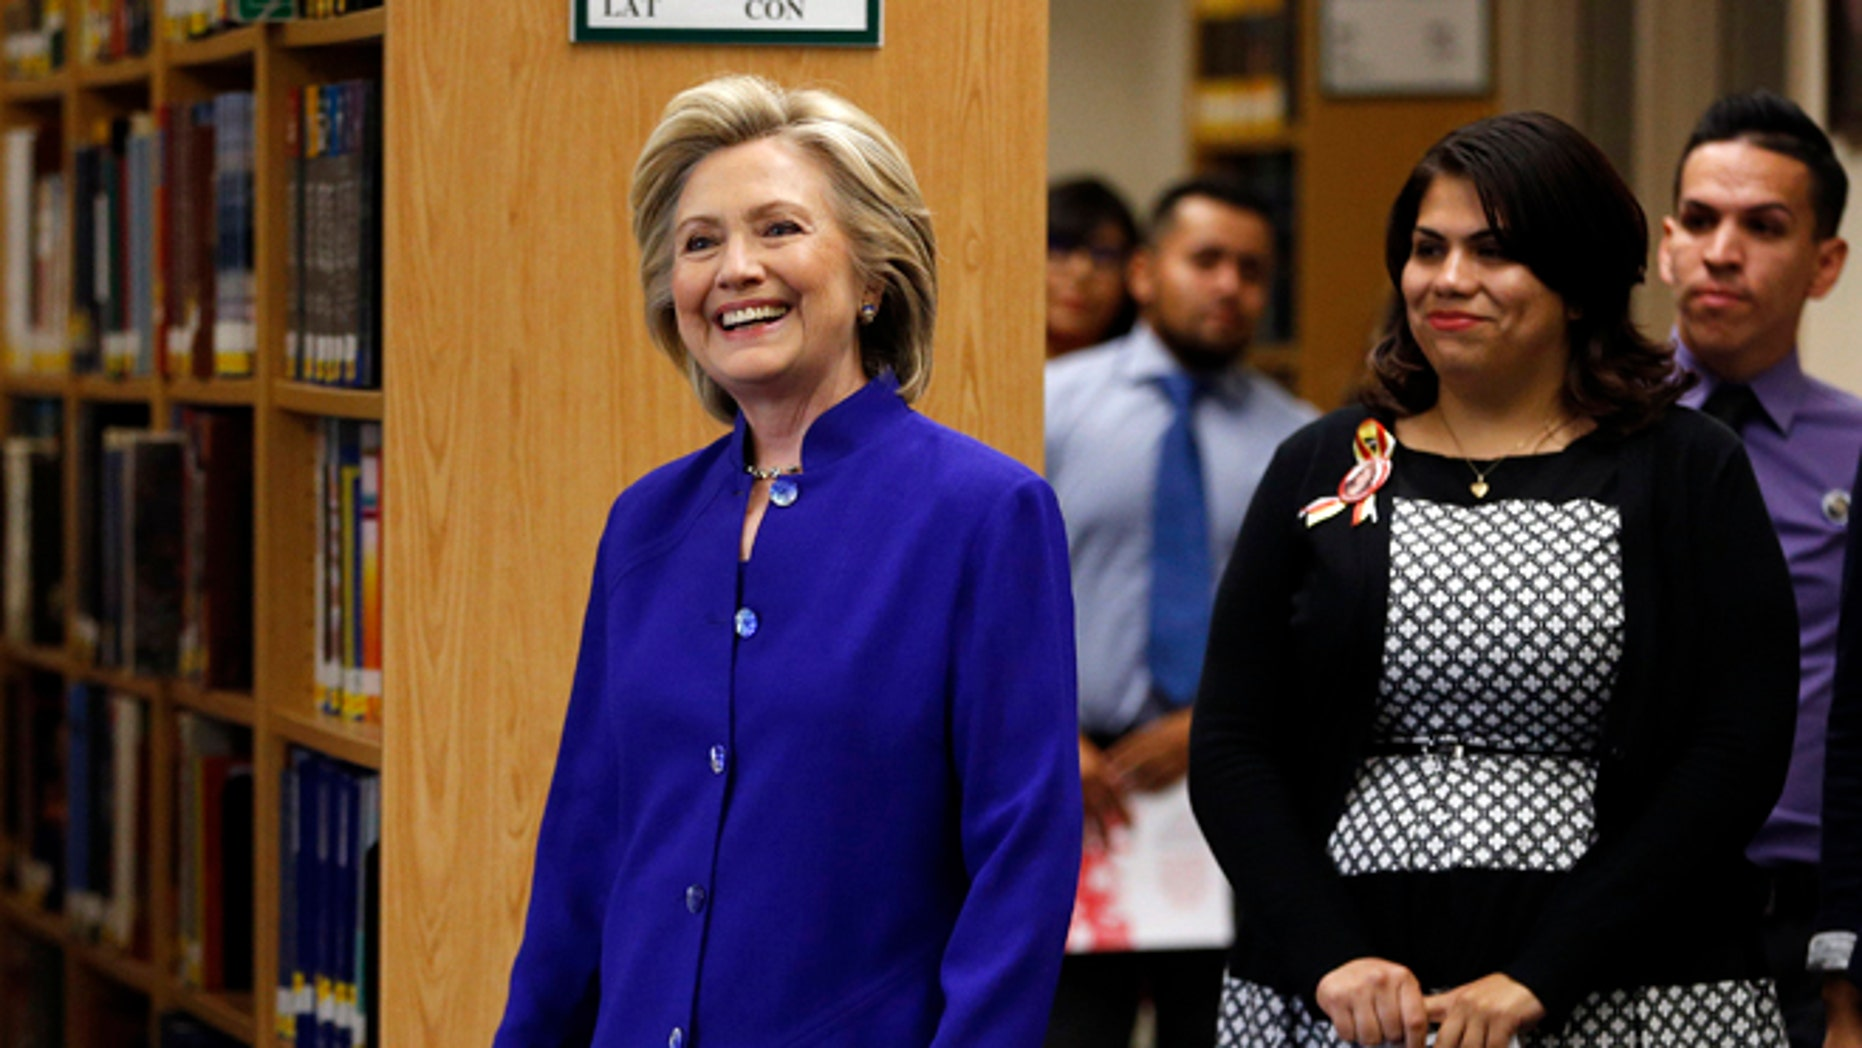 May 5, 2015: Democratic presidential candidate Hillary Rodham Clinton walks into an event at Rancho High School in Las Vegas. (AP)